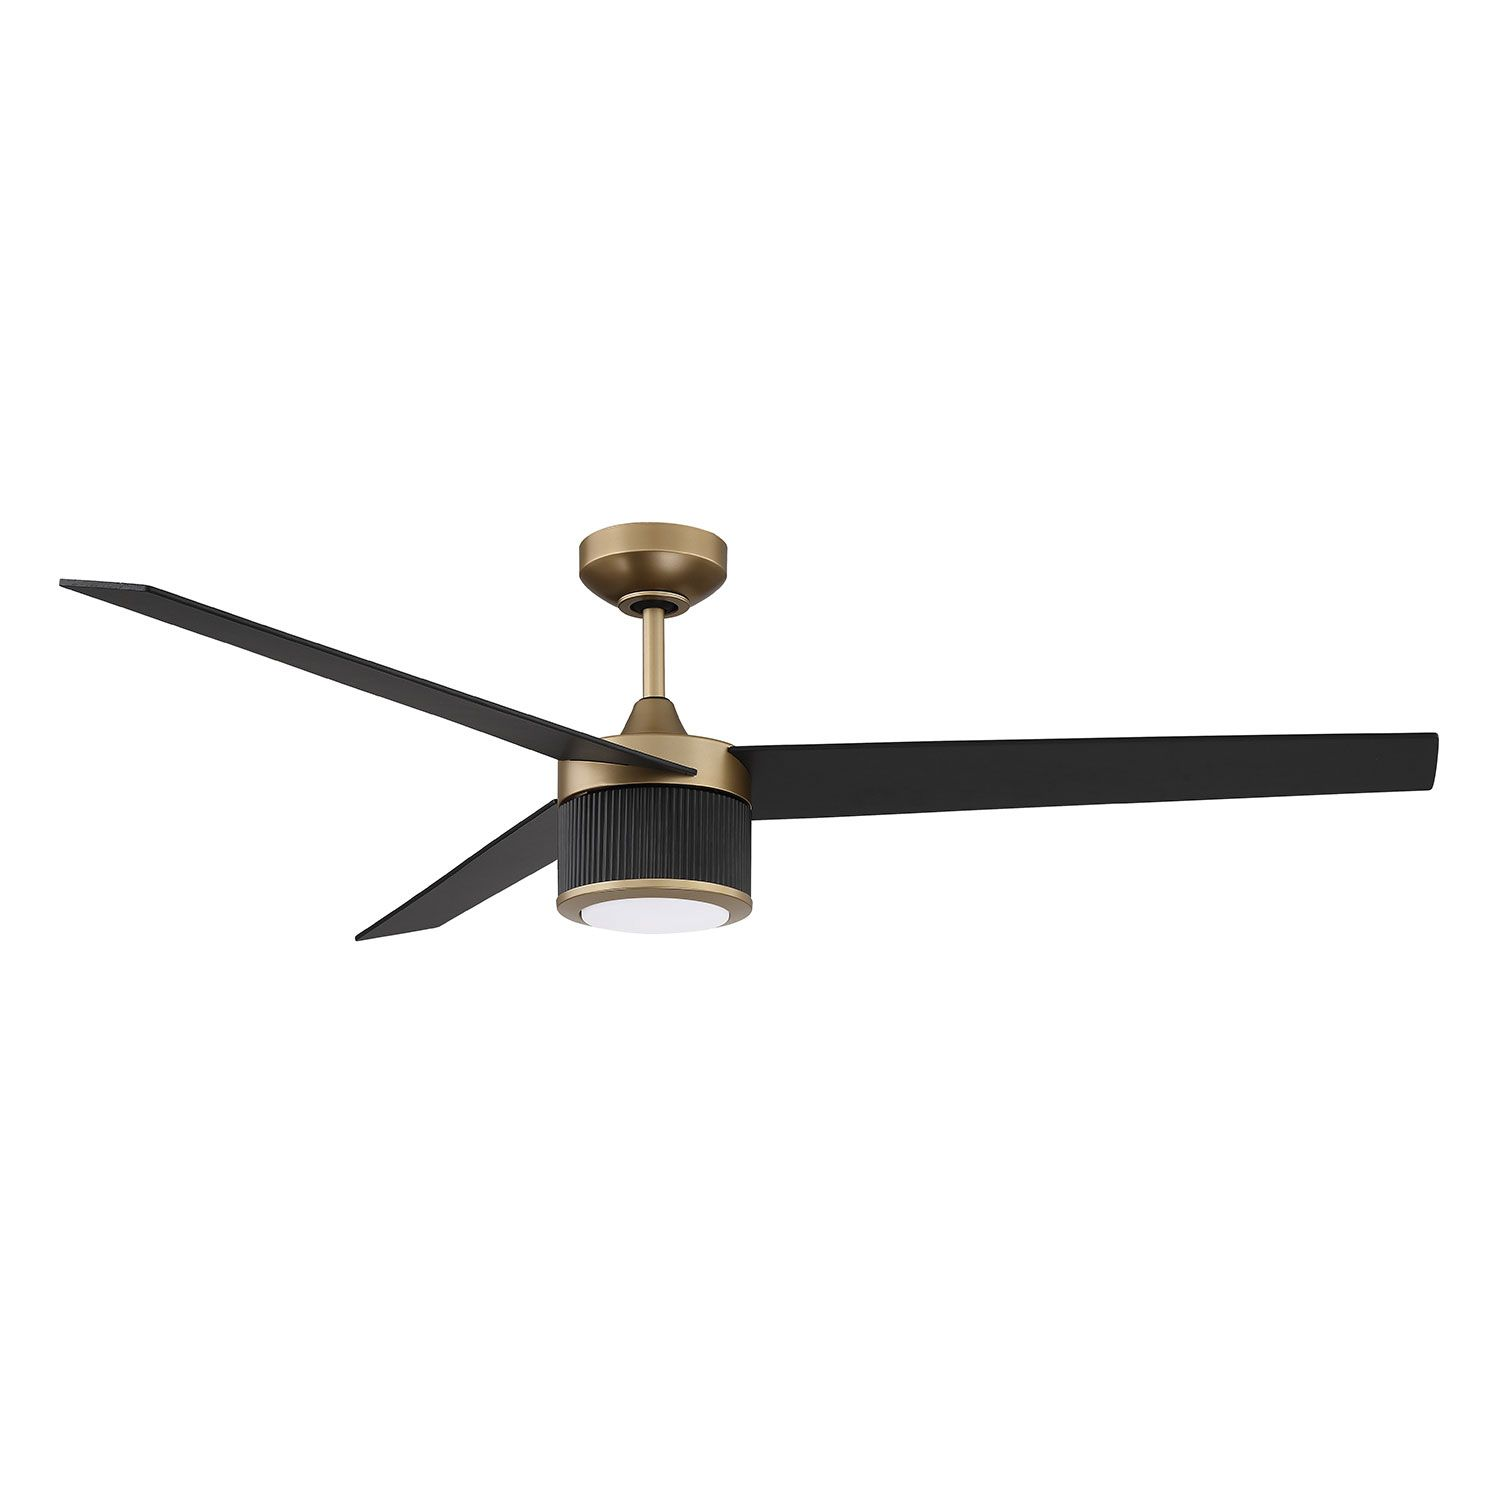 Kendal Triton Oilcan Brass Black Led Ceiling Fan With Blades Bellacor Black Ceiling Fan Led Ceiling Fan Modern Ceiling Fan